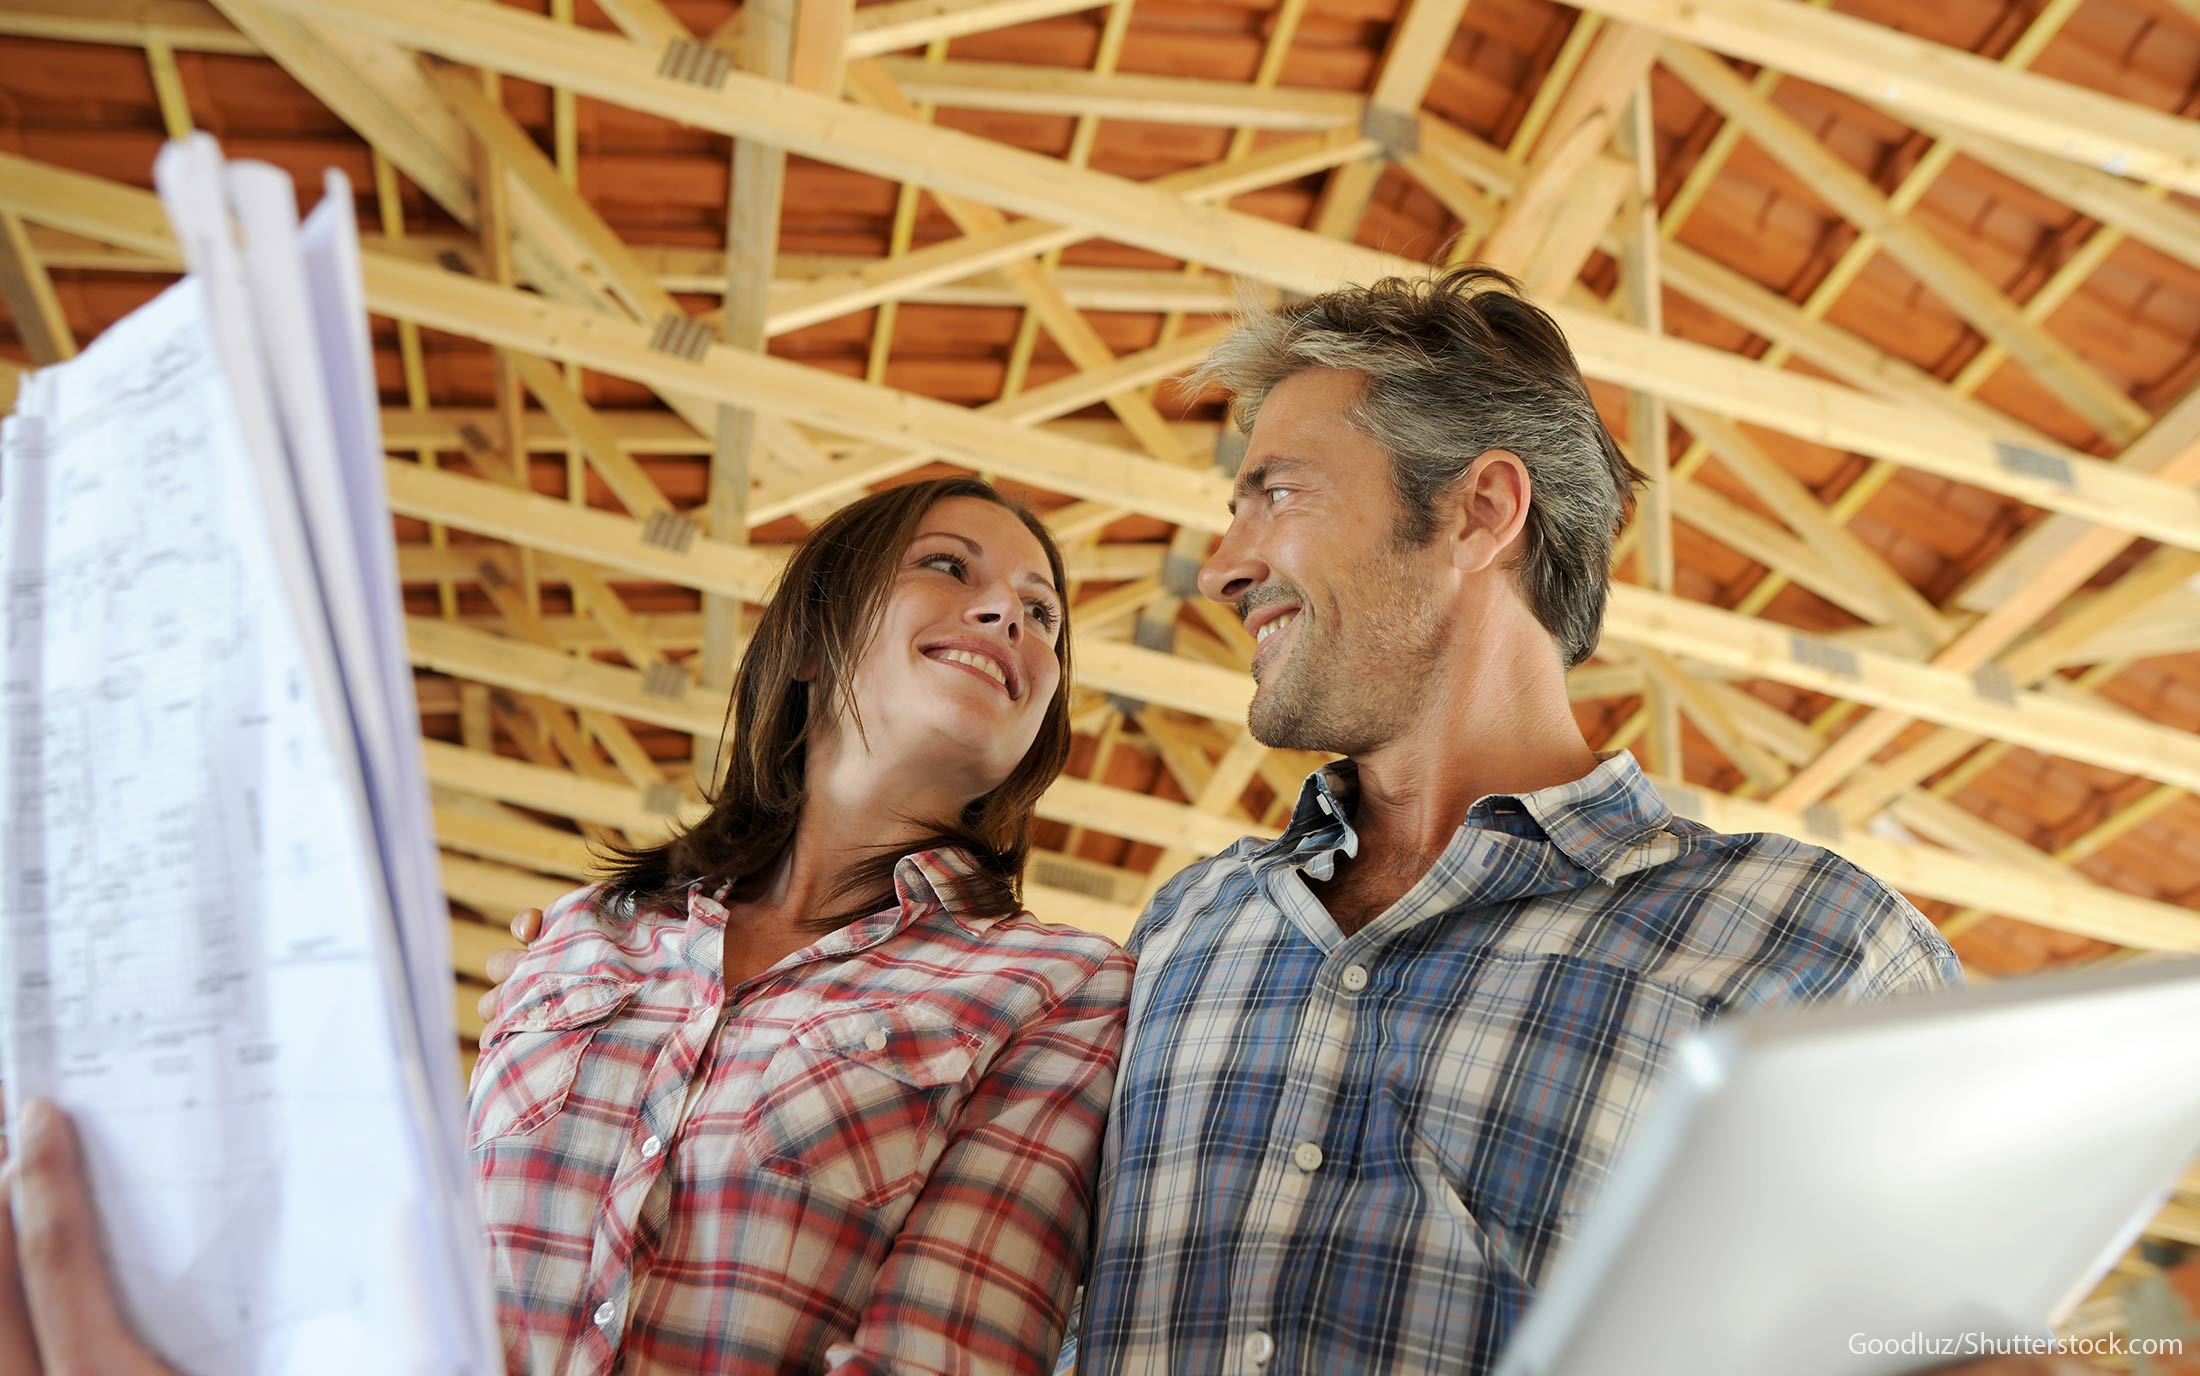 Our Team Specializes In New Construction And Can Help You Find The Perfect  Fit. We Will Put You First And Work Hard To Save You Money And Get The  Upgrades ...